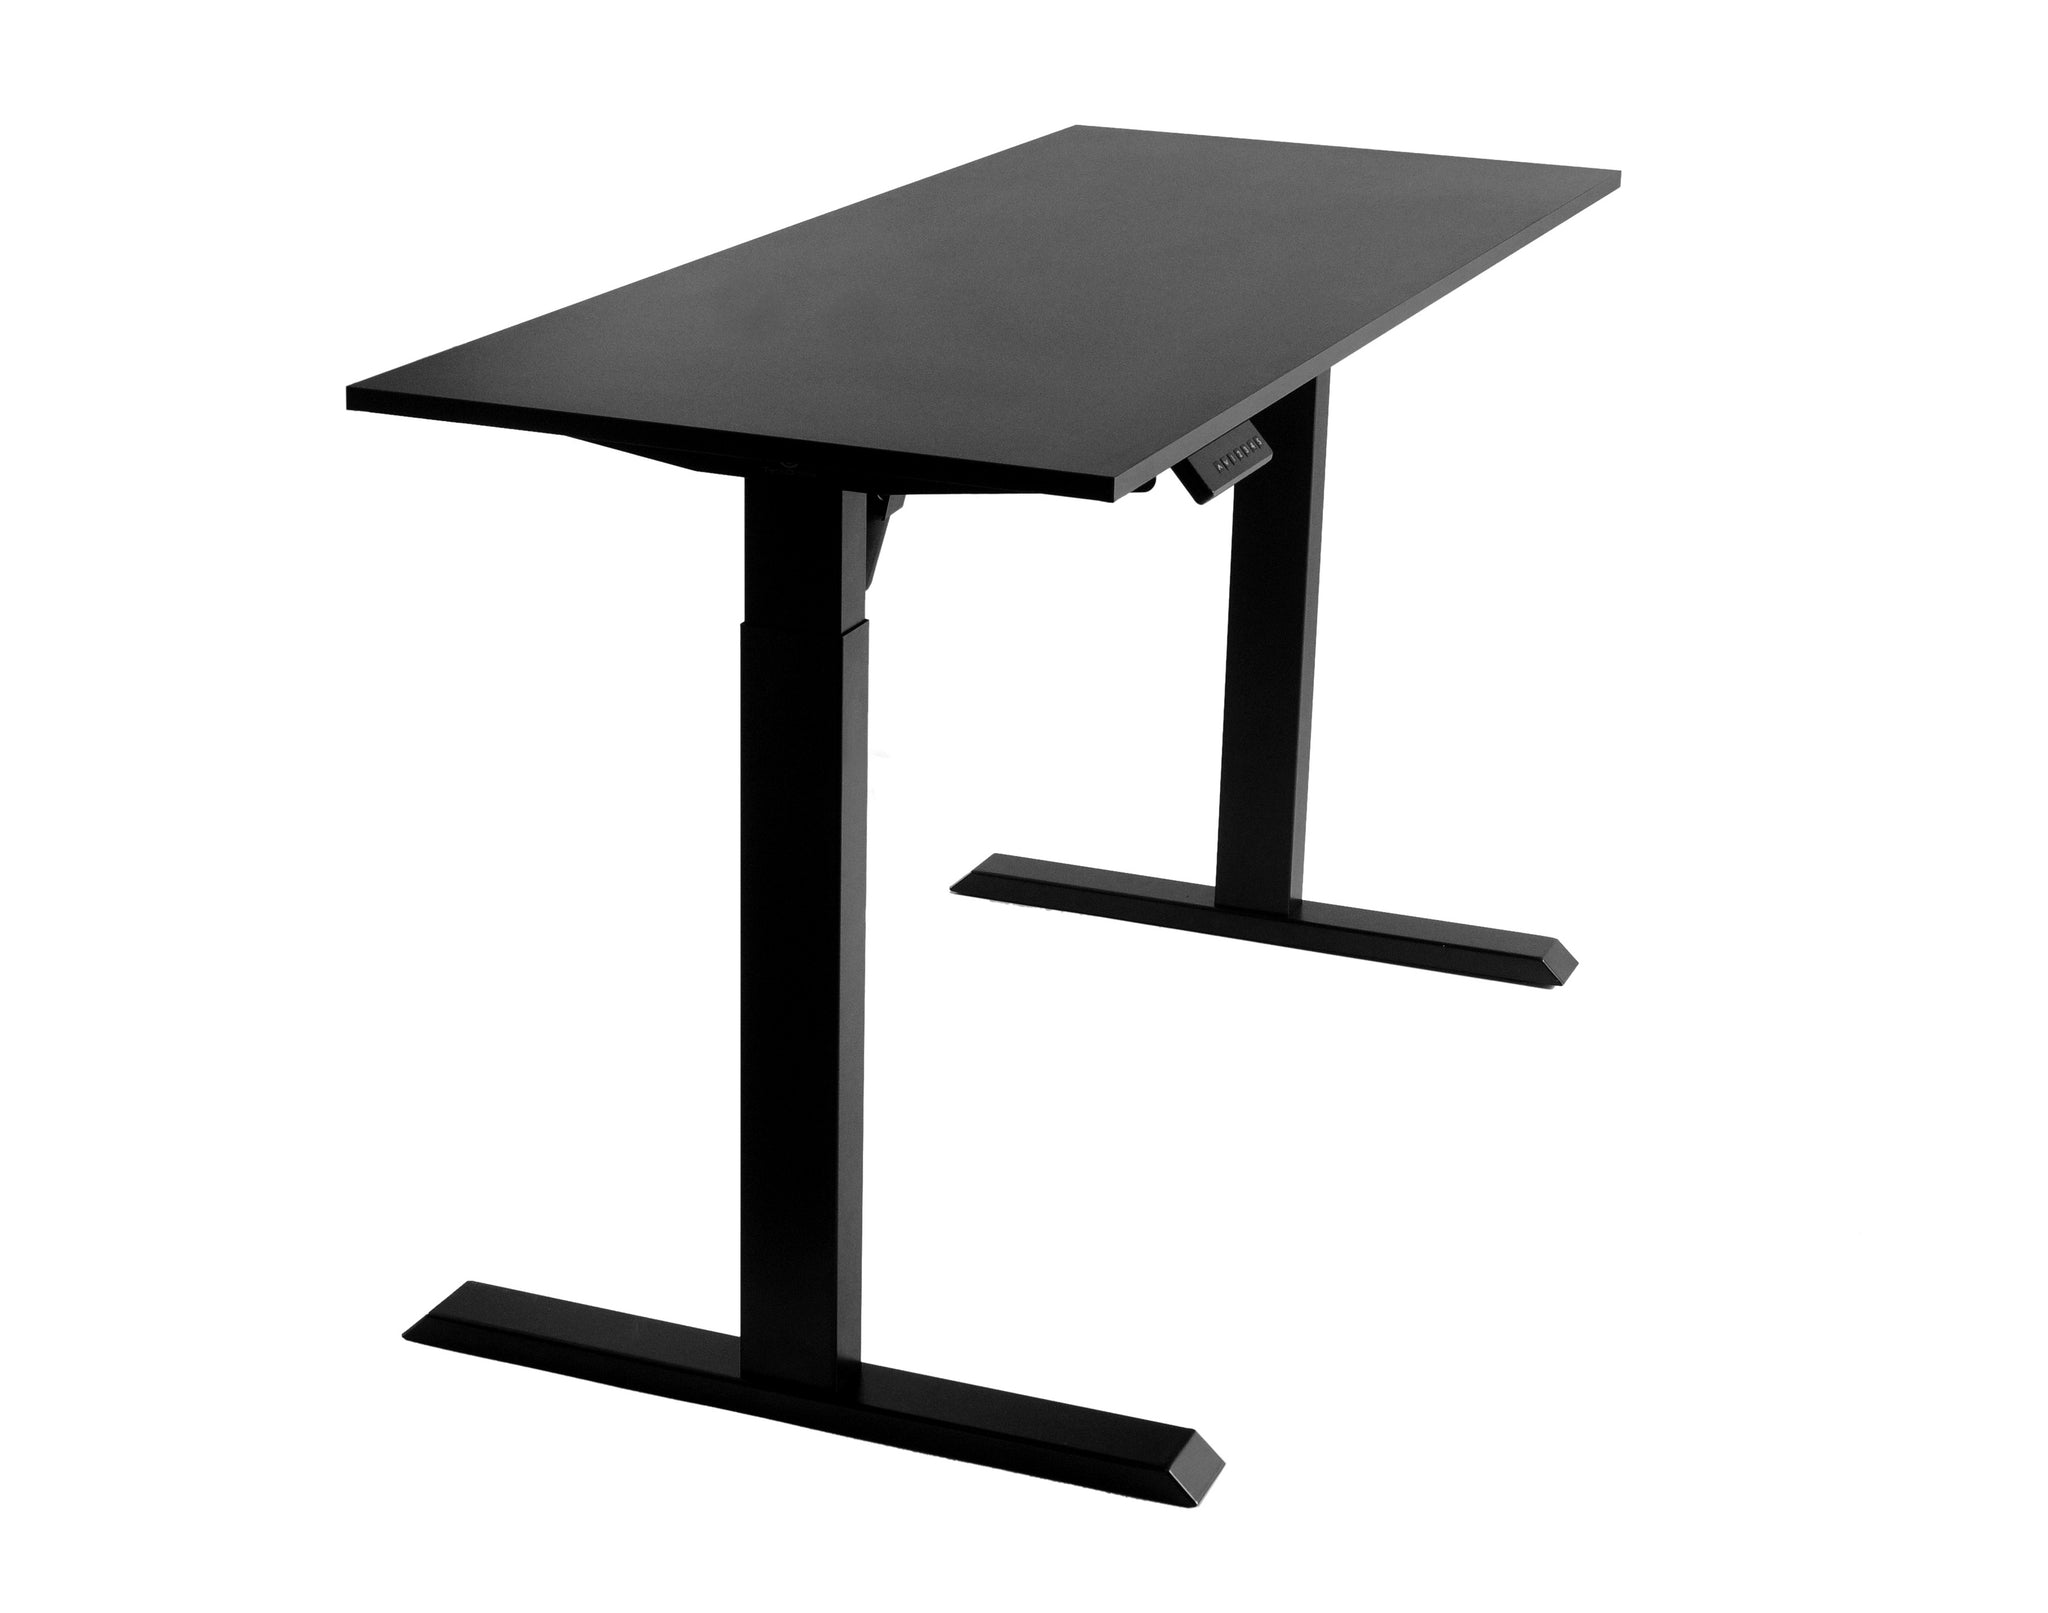 Home Office 47 x 27 inch Universal Table Top for Sit to Stand Desk Frames Black